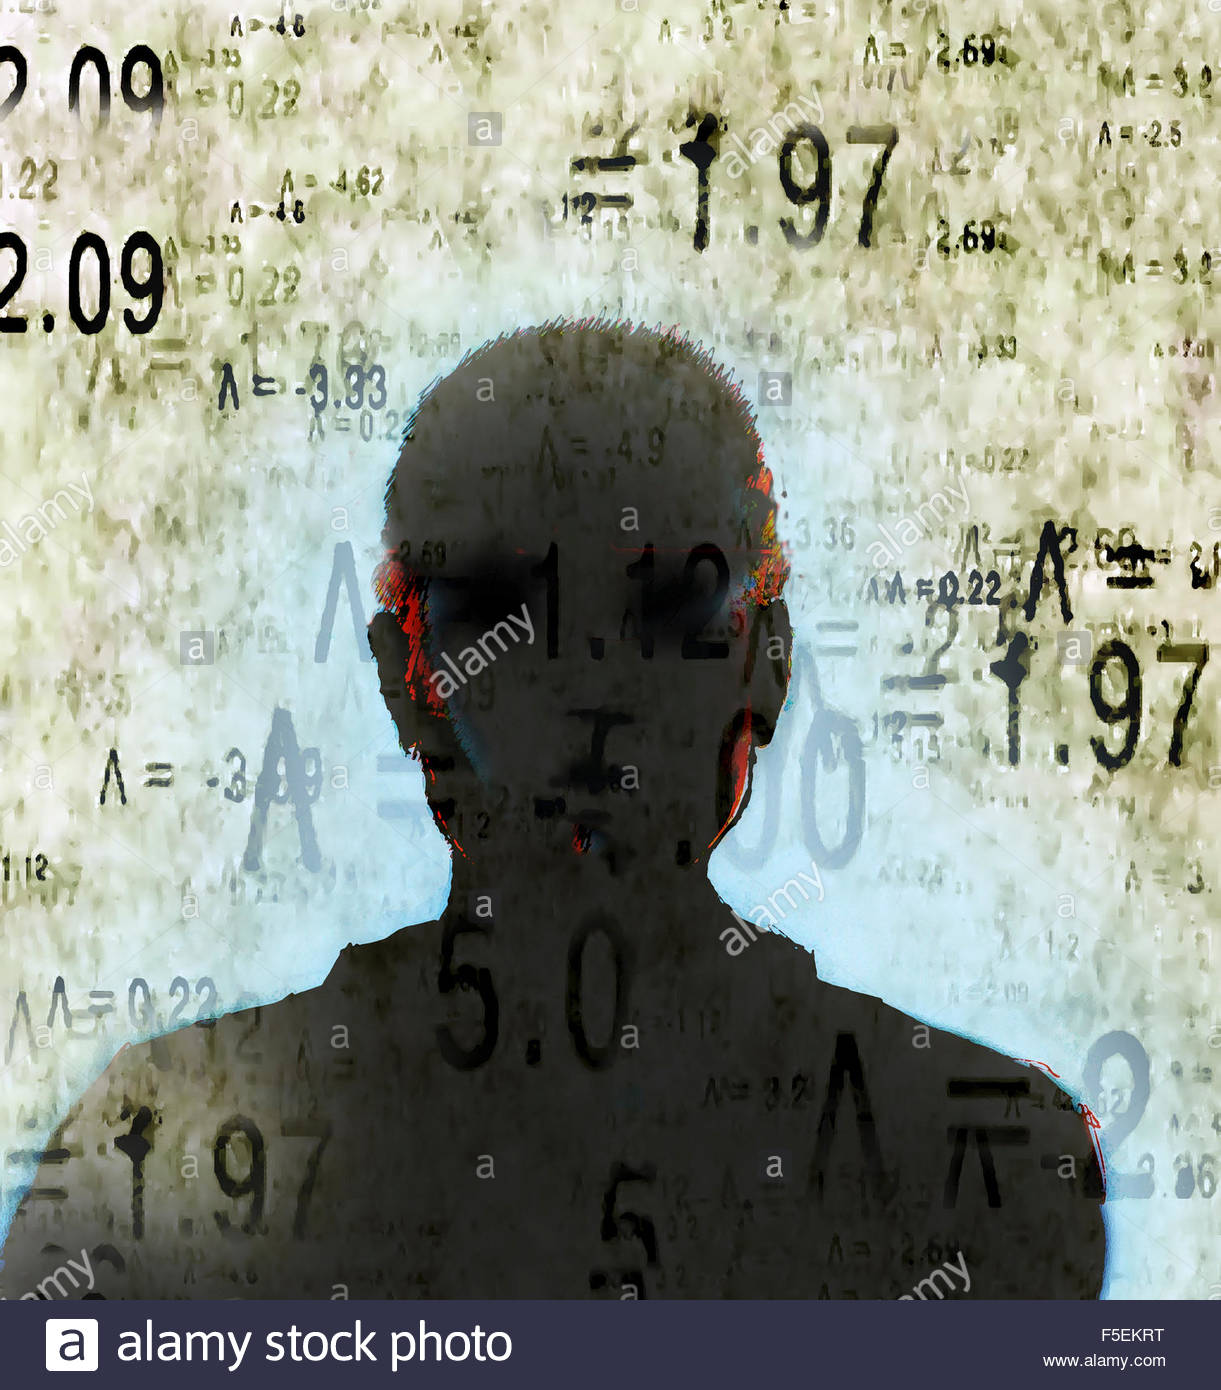 Silhouette of man's head surrounded by mathematical symbols and numbers - Stock Image